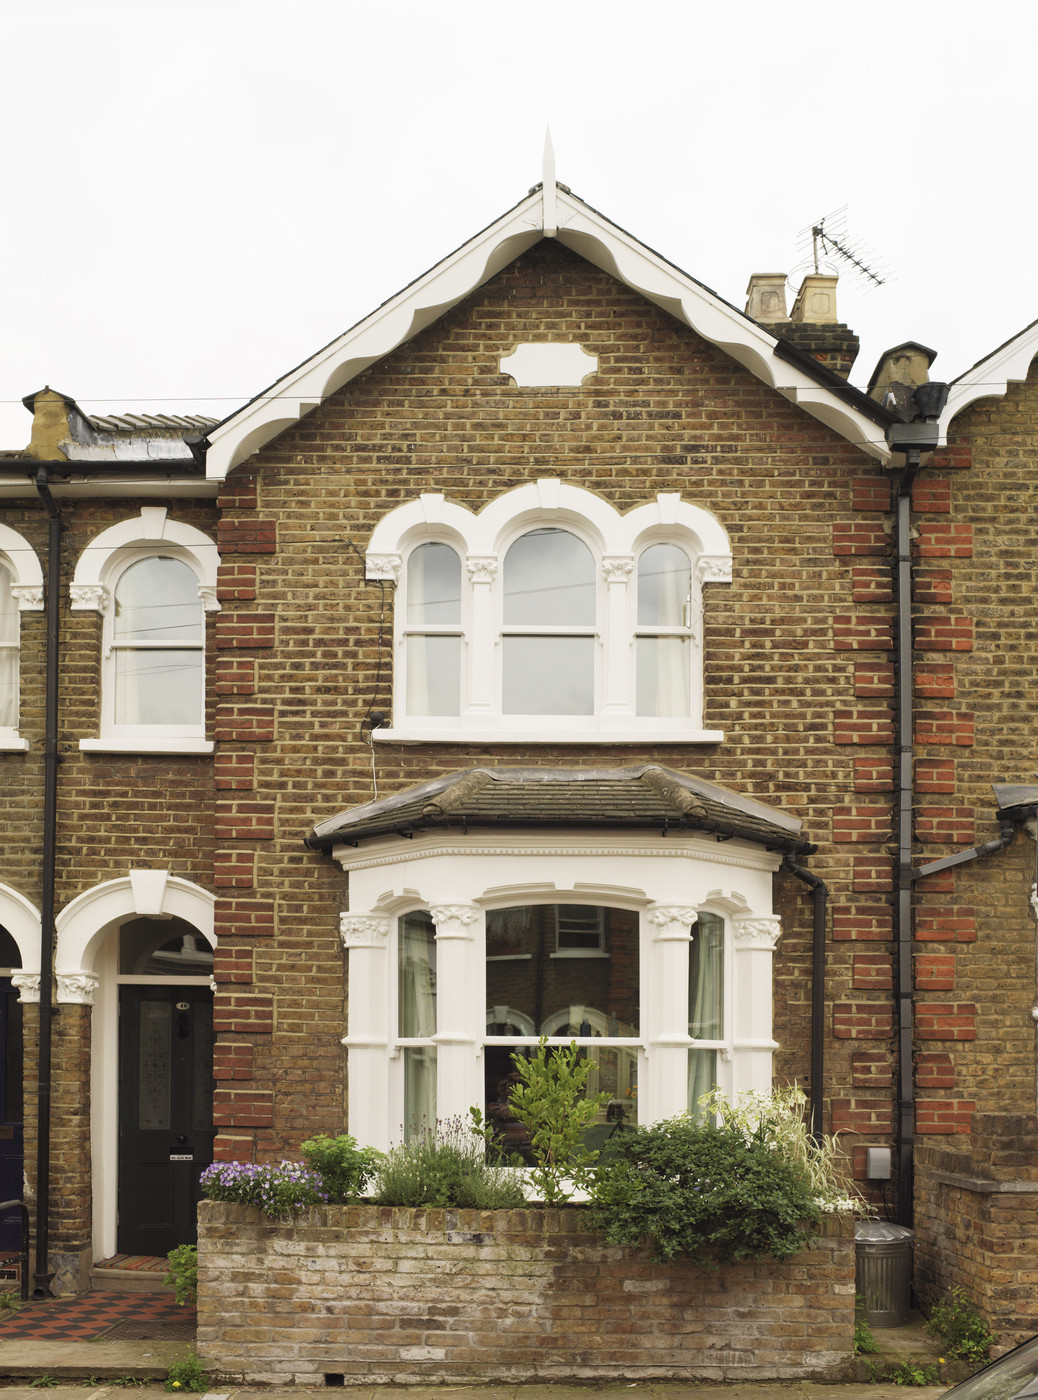 Terraced House Photos, Design, Ideas, Remodel, And Decor   Lonny